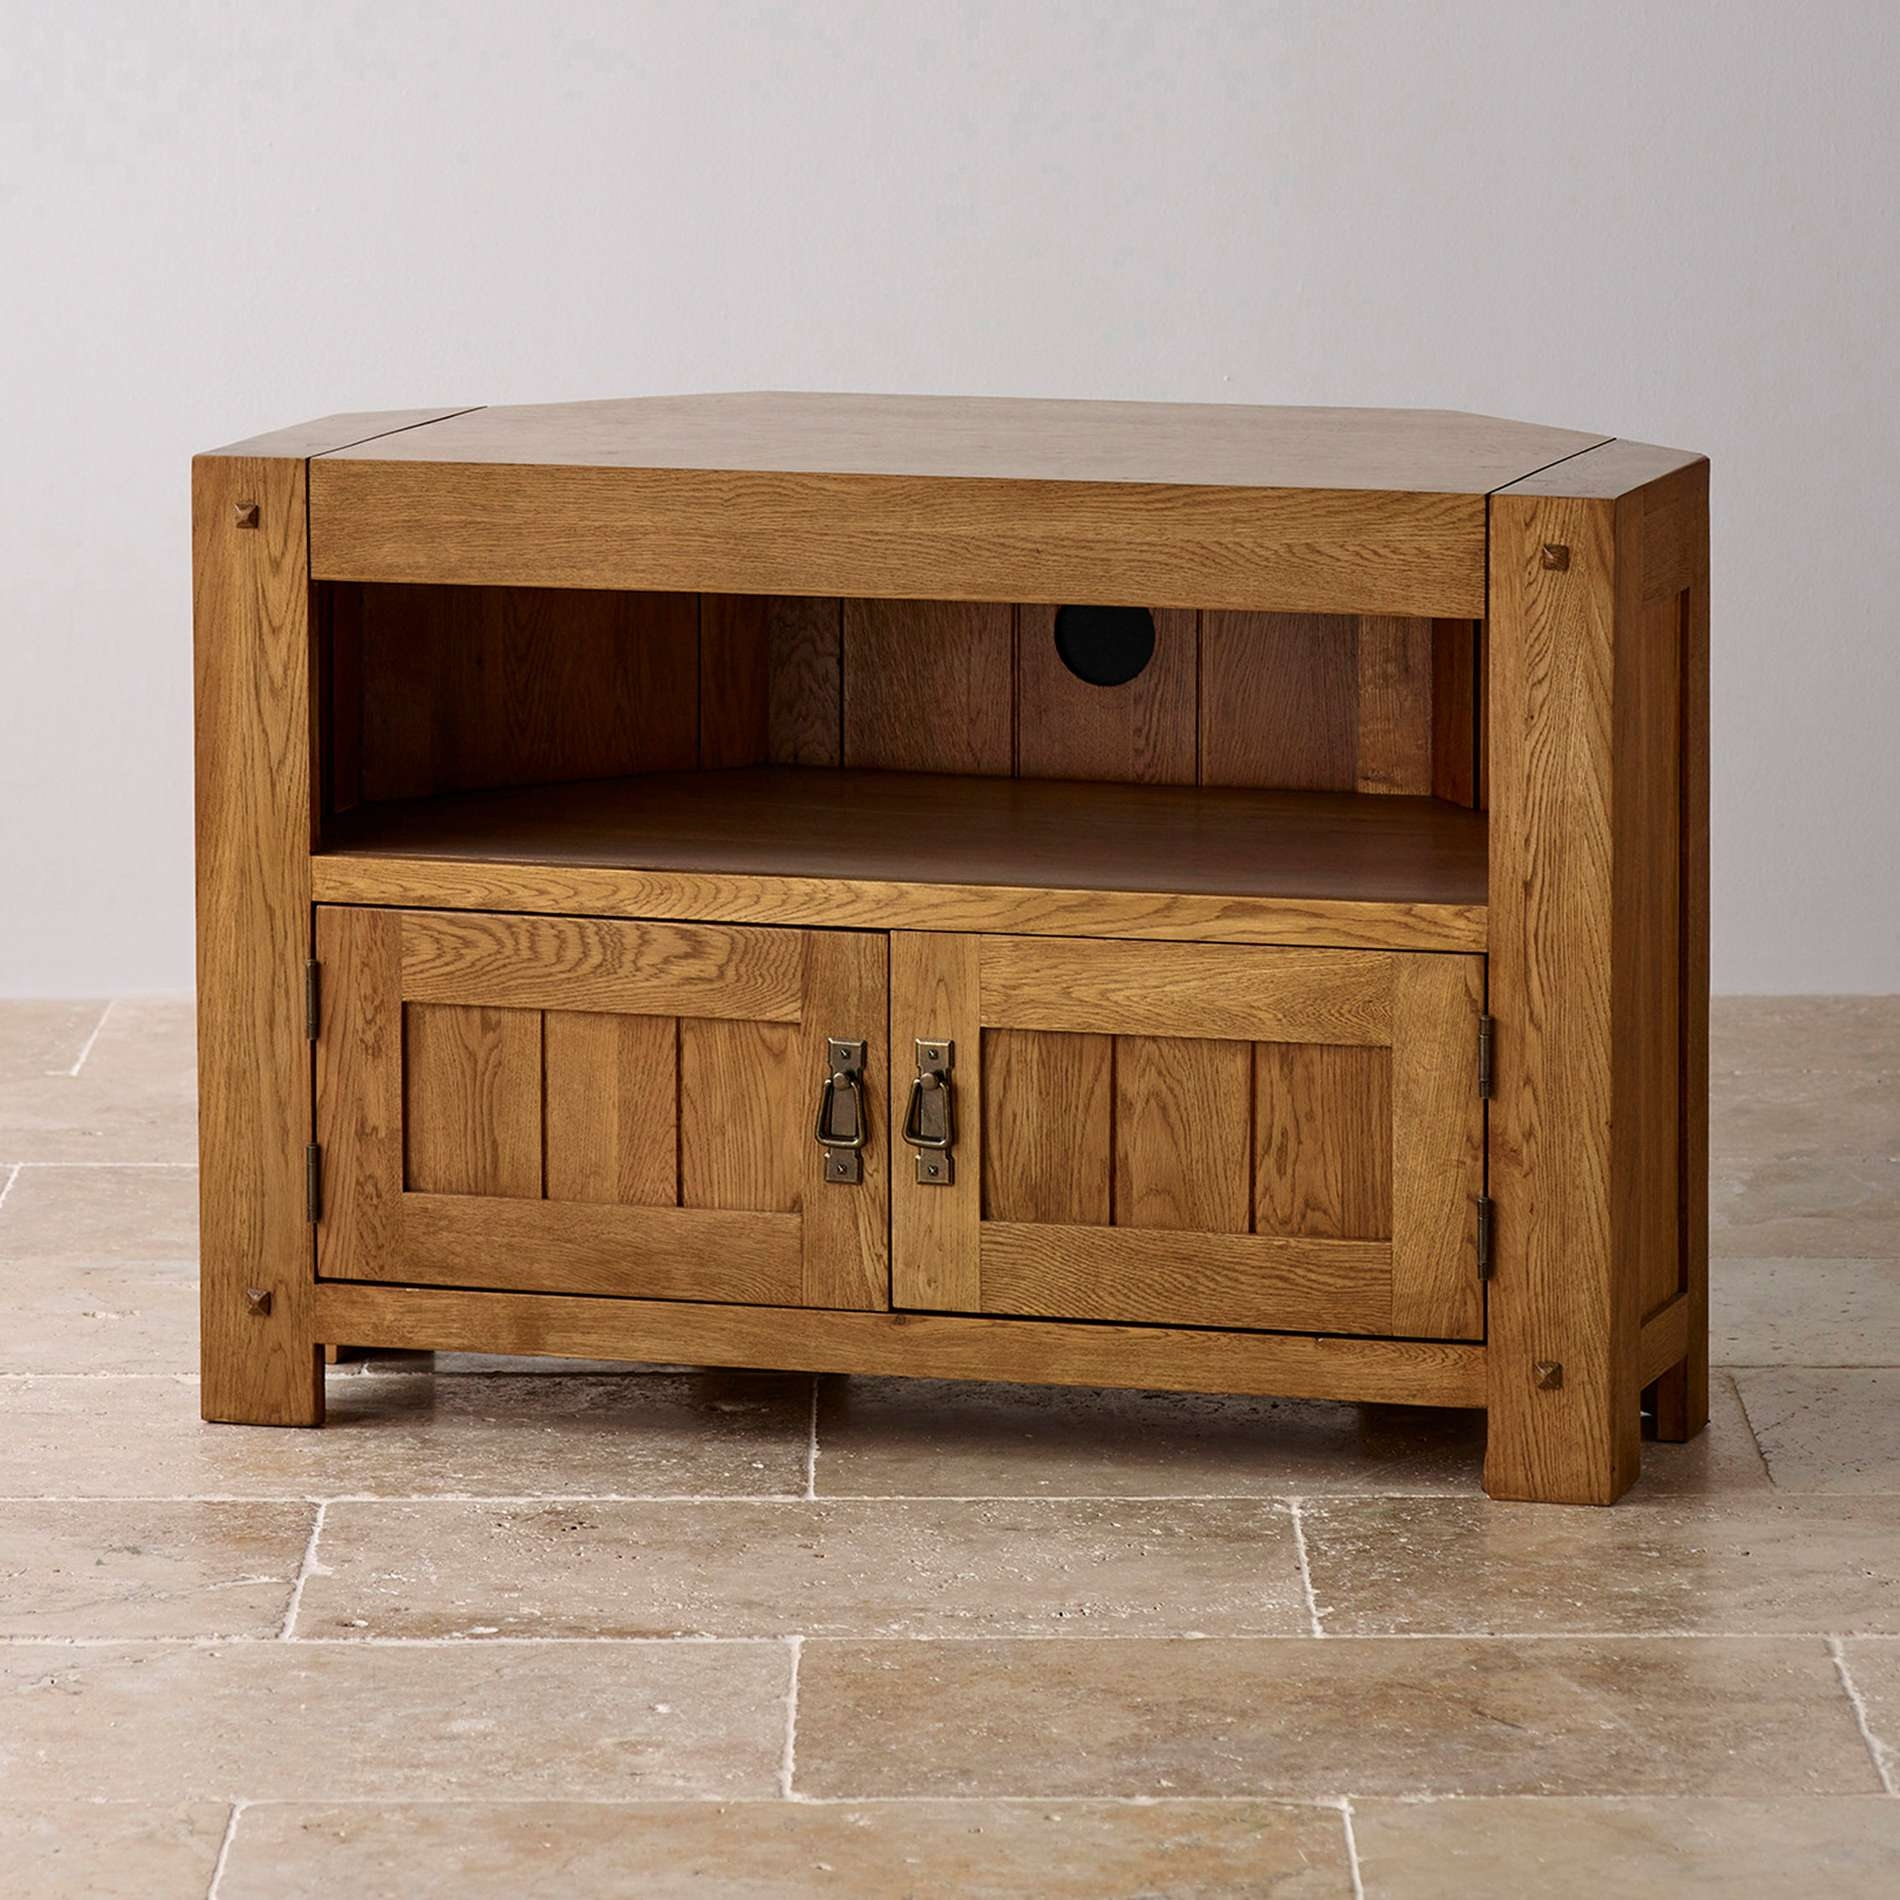 Epic Rustic Corner Tv Stand 55 For Your Home Design Ideas With With Rustic Corner Tv Stands (View 7 of 20)